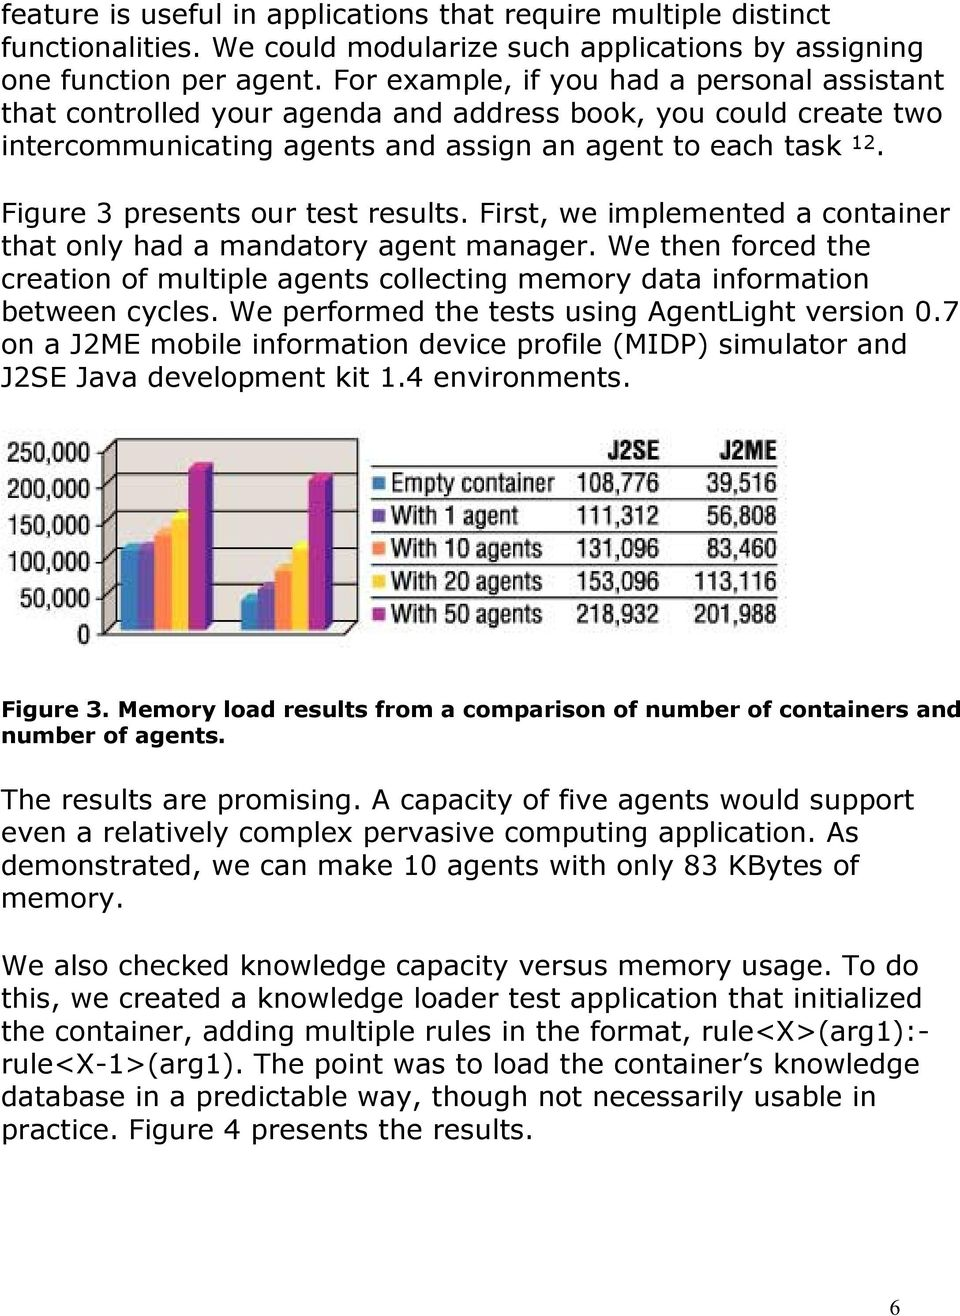 Figure 3 presents our test resuts. First, we impemented a container that ony had a mandatory agent manager. We then forced the creation of mutipe agents coecting memory data information between cyces.